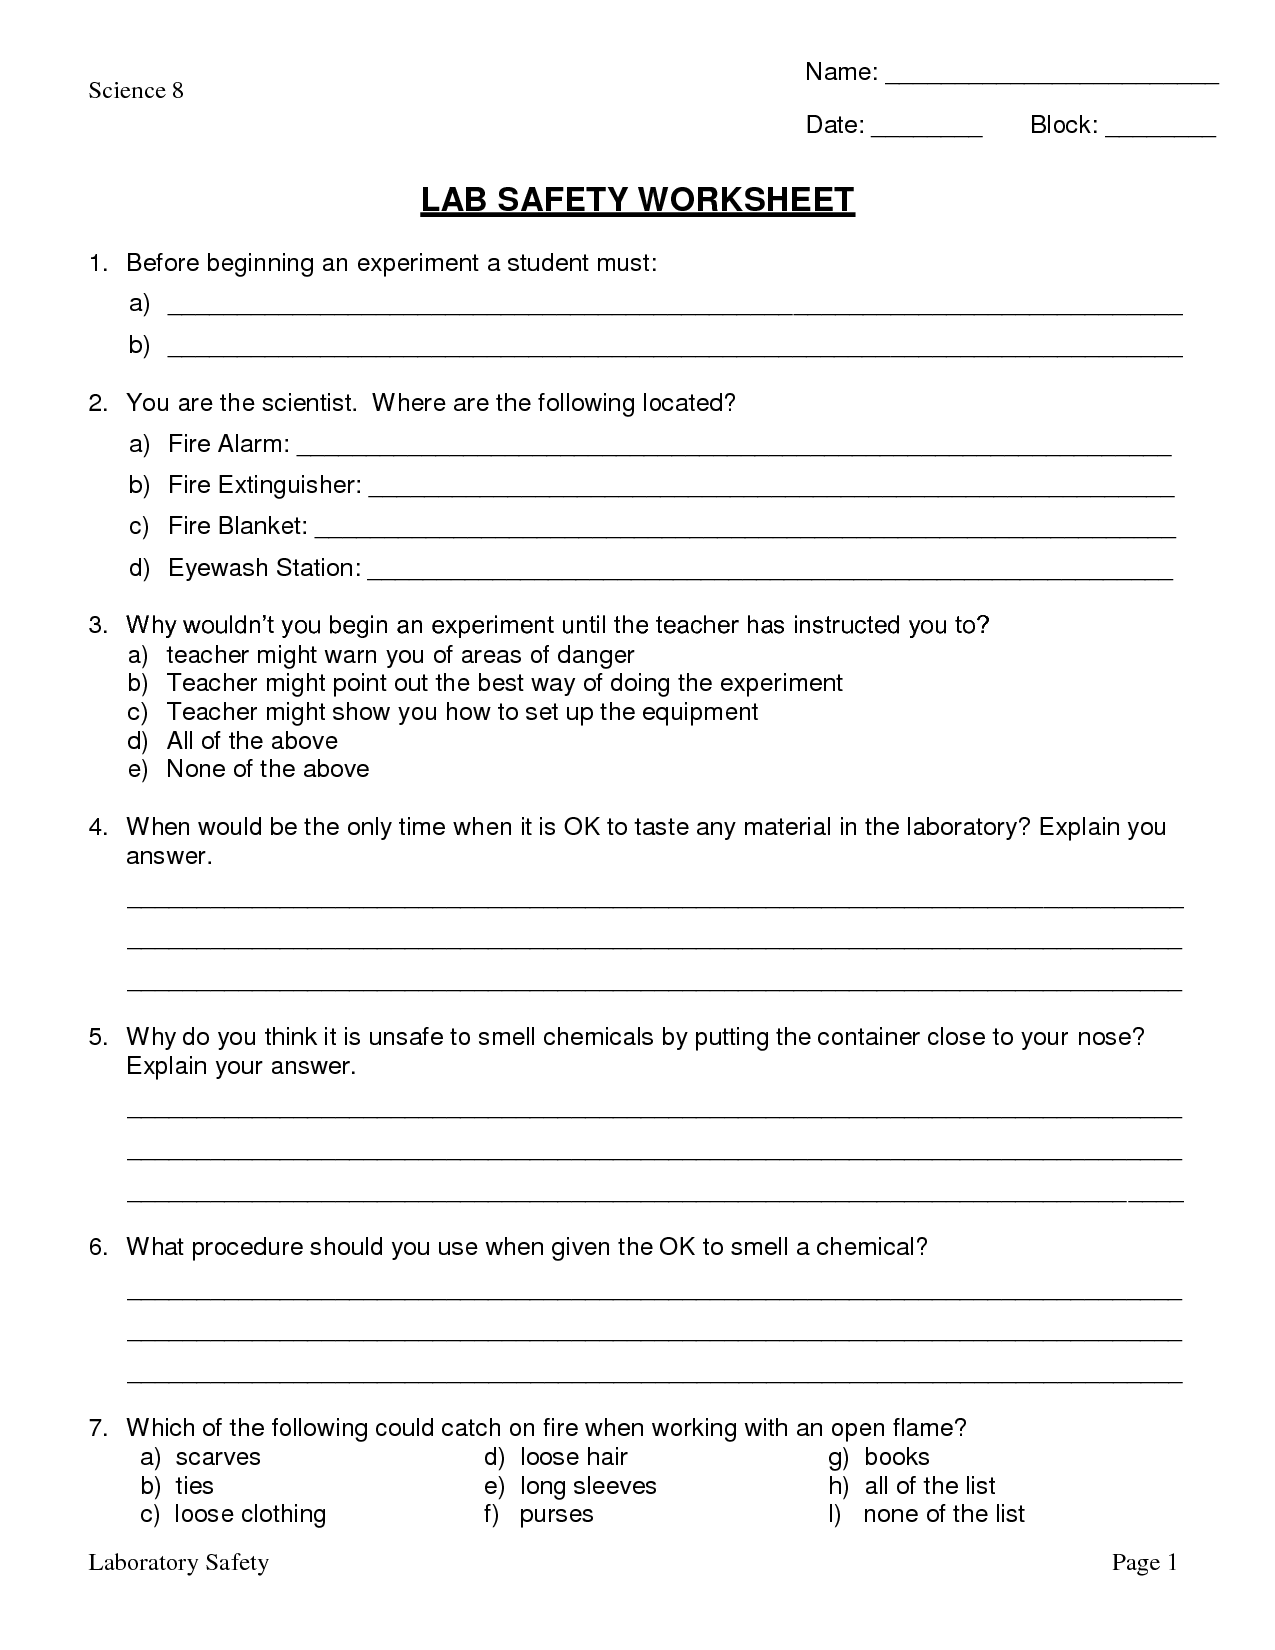 Science Fire Safety Worksheet